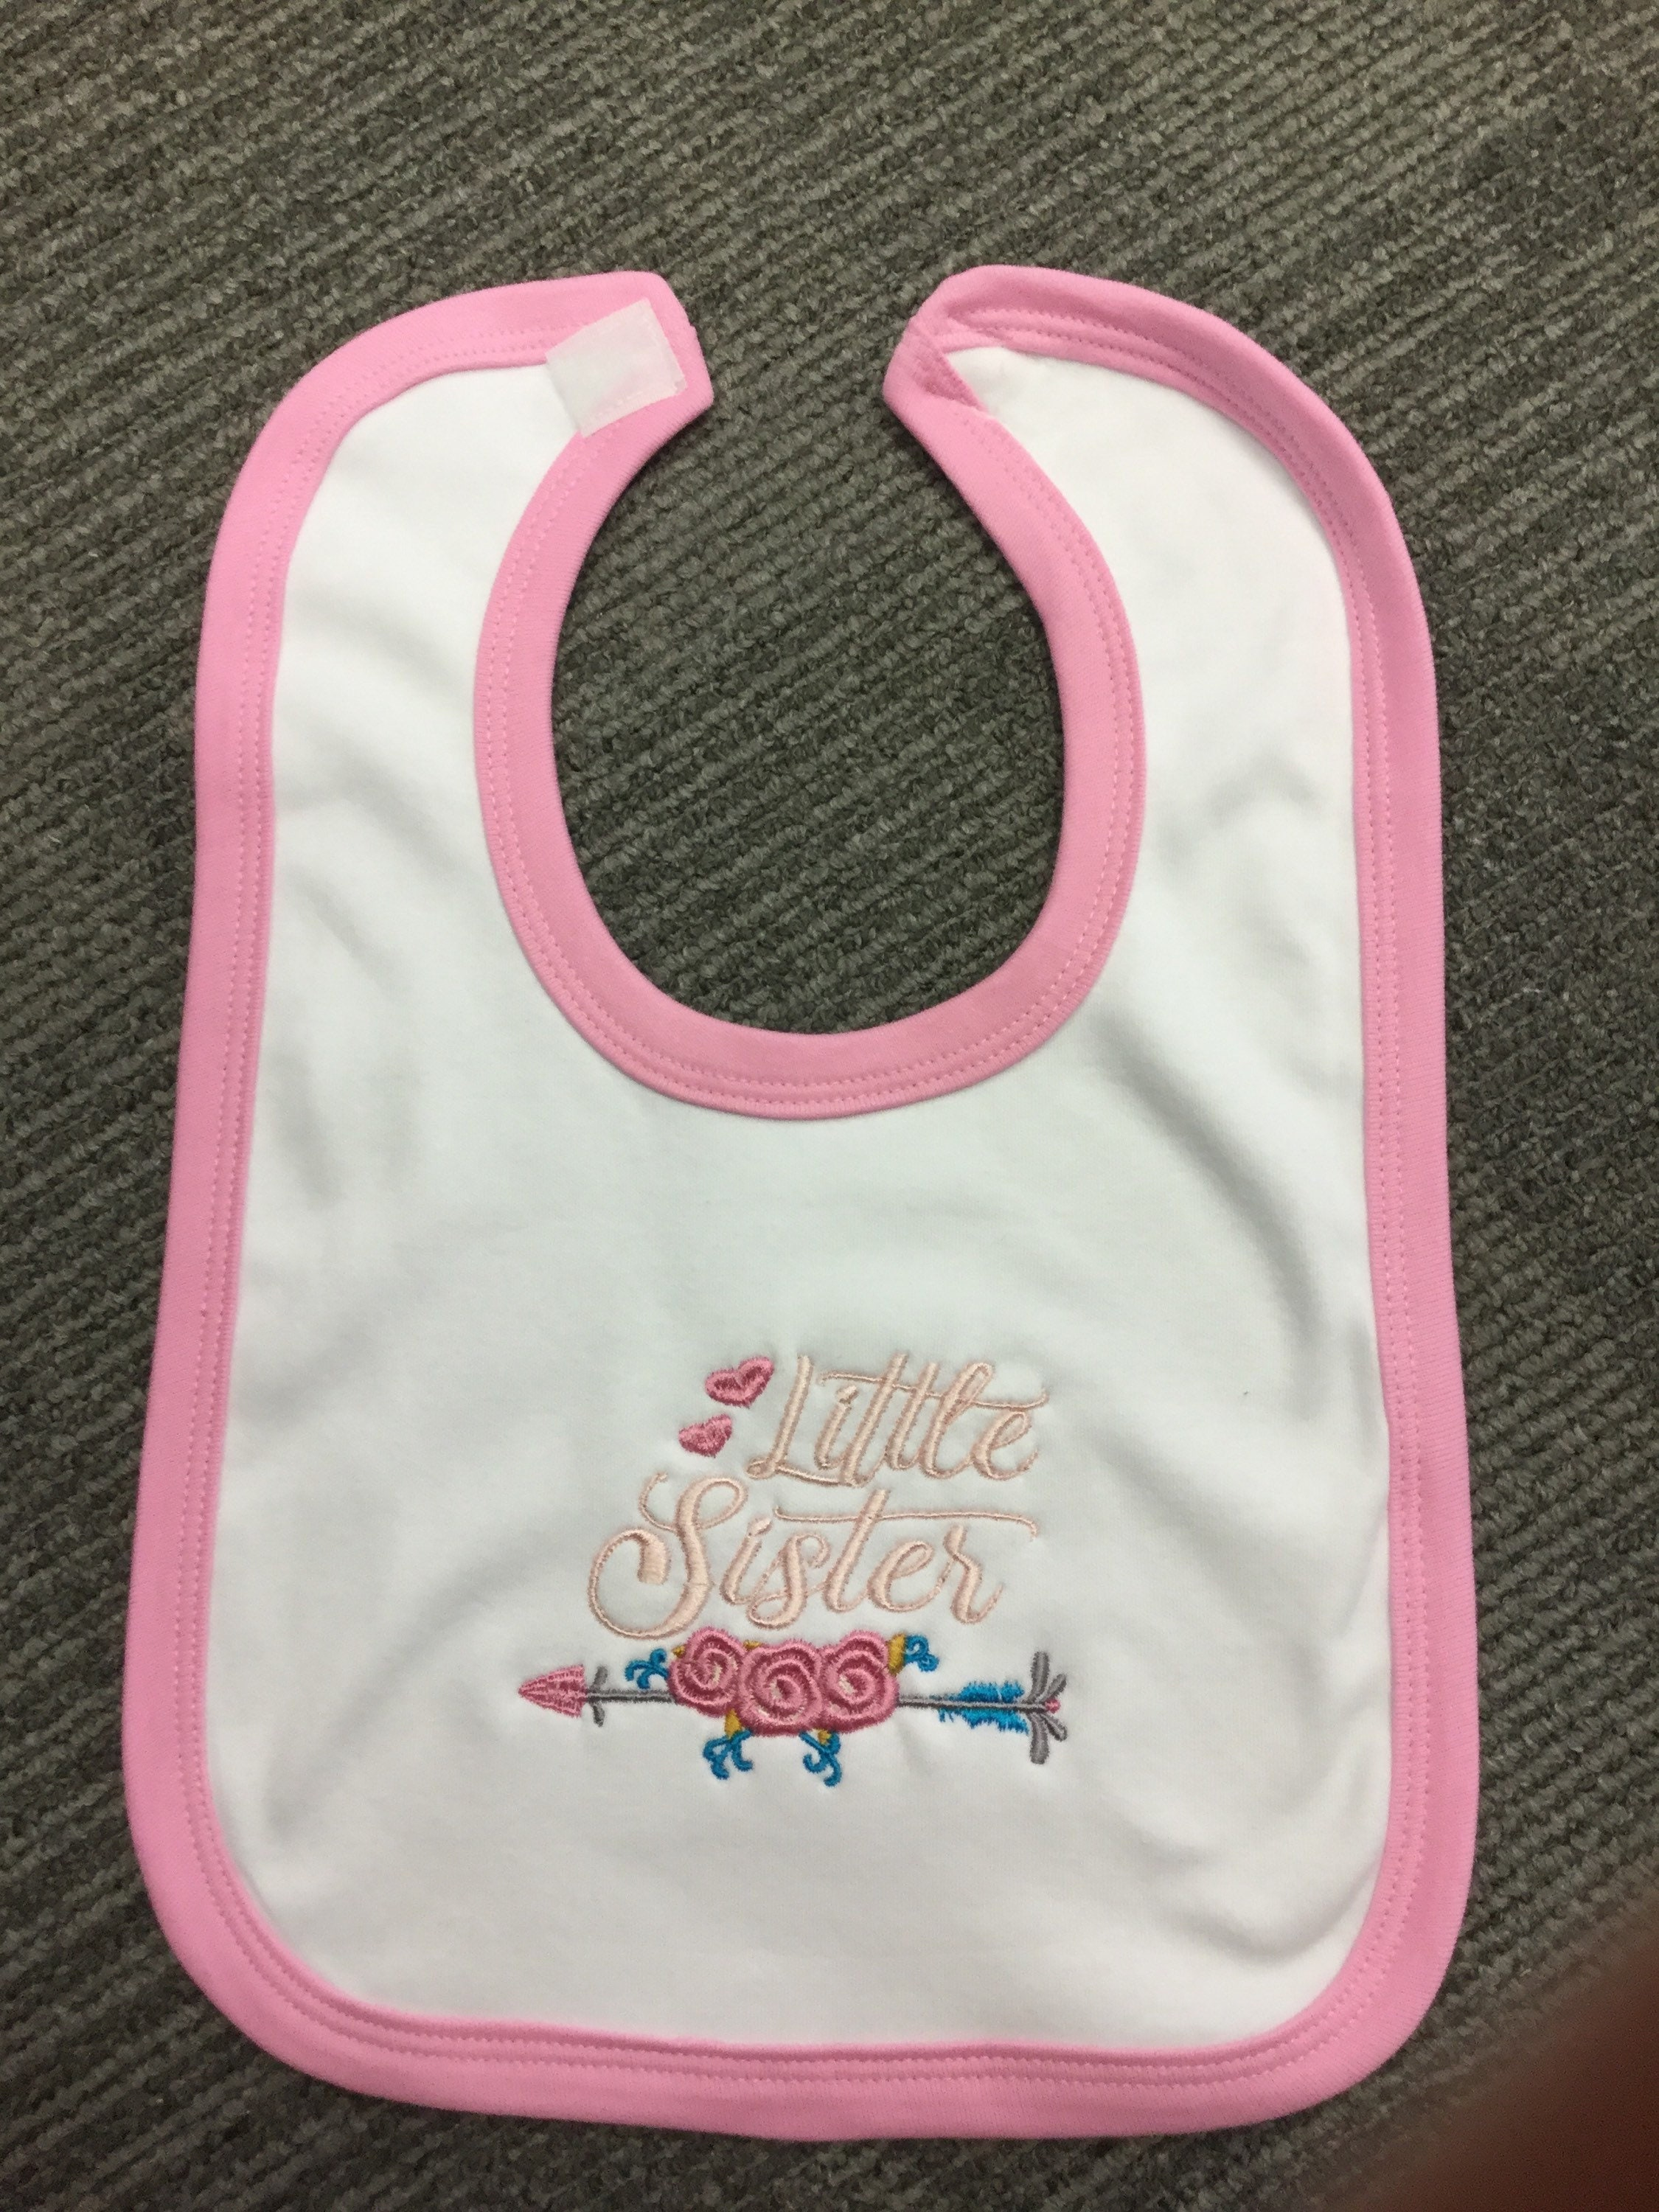 Special Guest Embroidered Baby Bib Gift Personalised Wedding